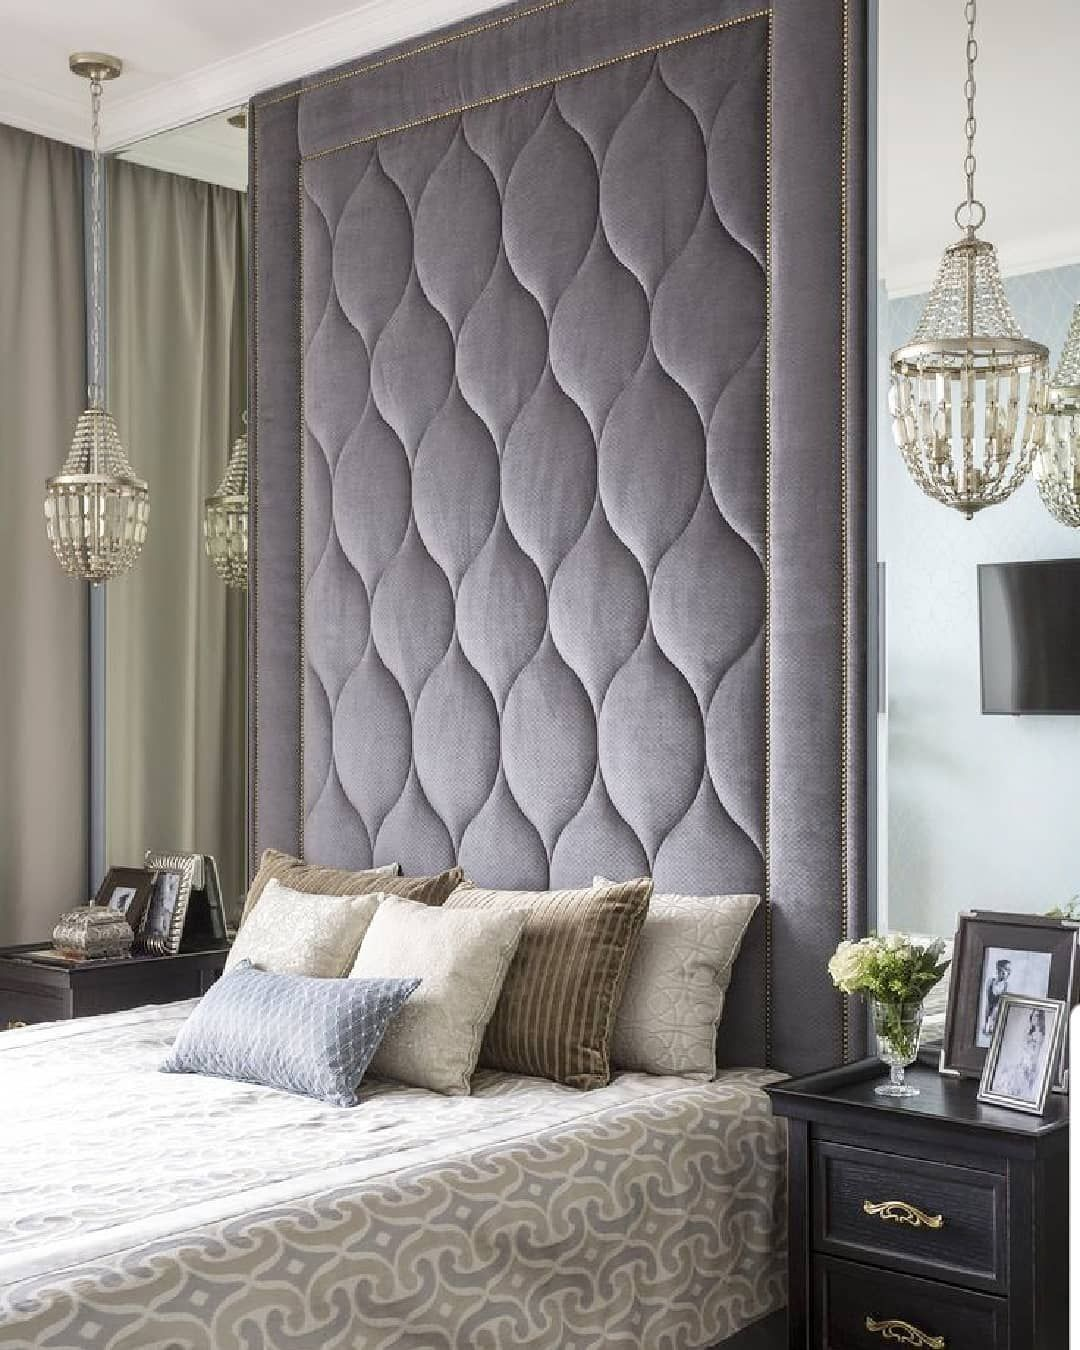 Monica Wilcox On Instagram These Tall Headboards Are All The